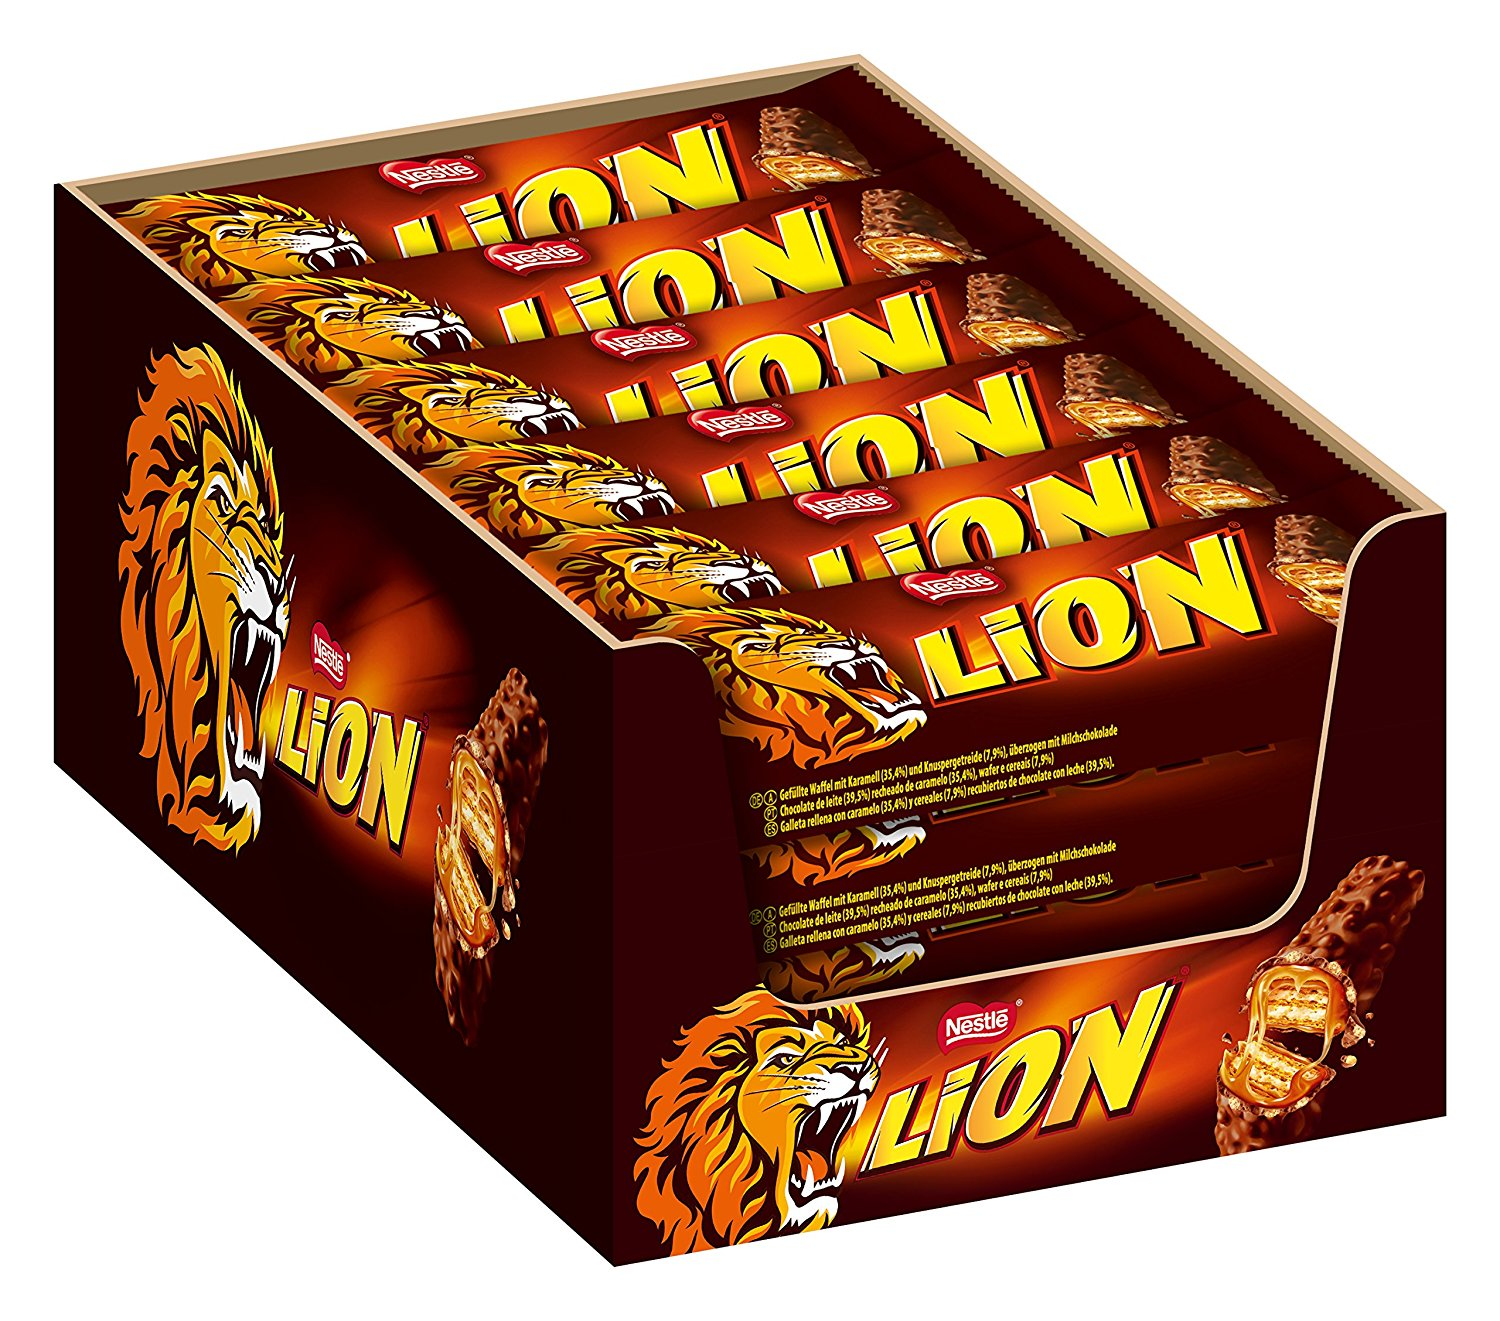 Nestle Lion Schokoriegel amazon